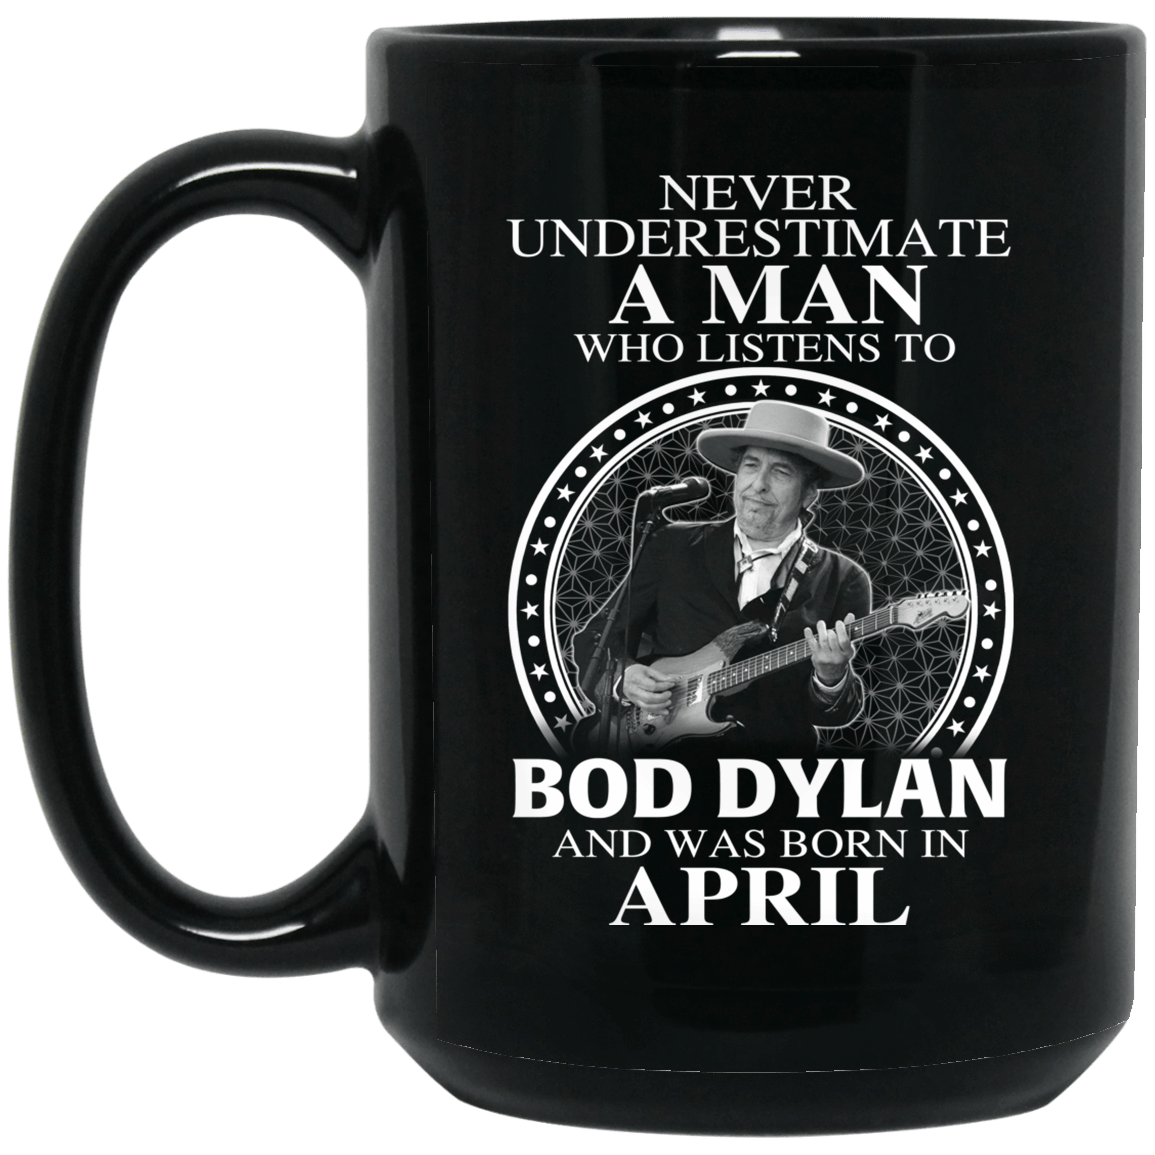 A Man Who Listens To Bob Dylan And Was Born In April Mug 1066-10182-76154706-49311 - Tee Ript